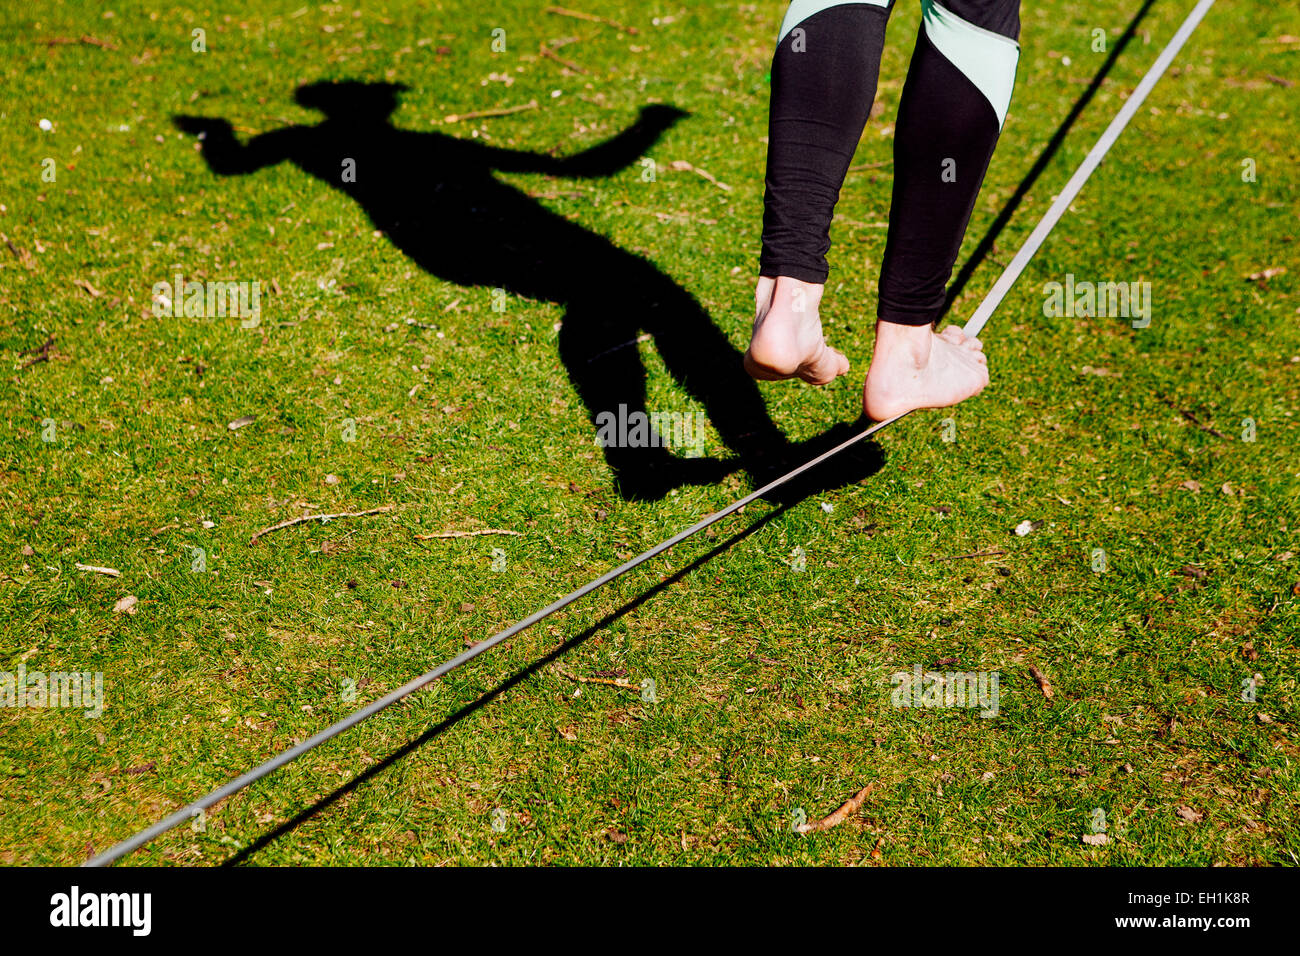 Low section of man balancing on slack-line in park - Stock Image